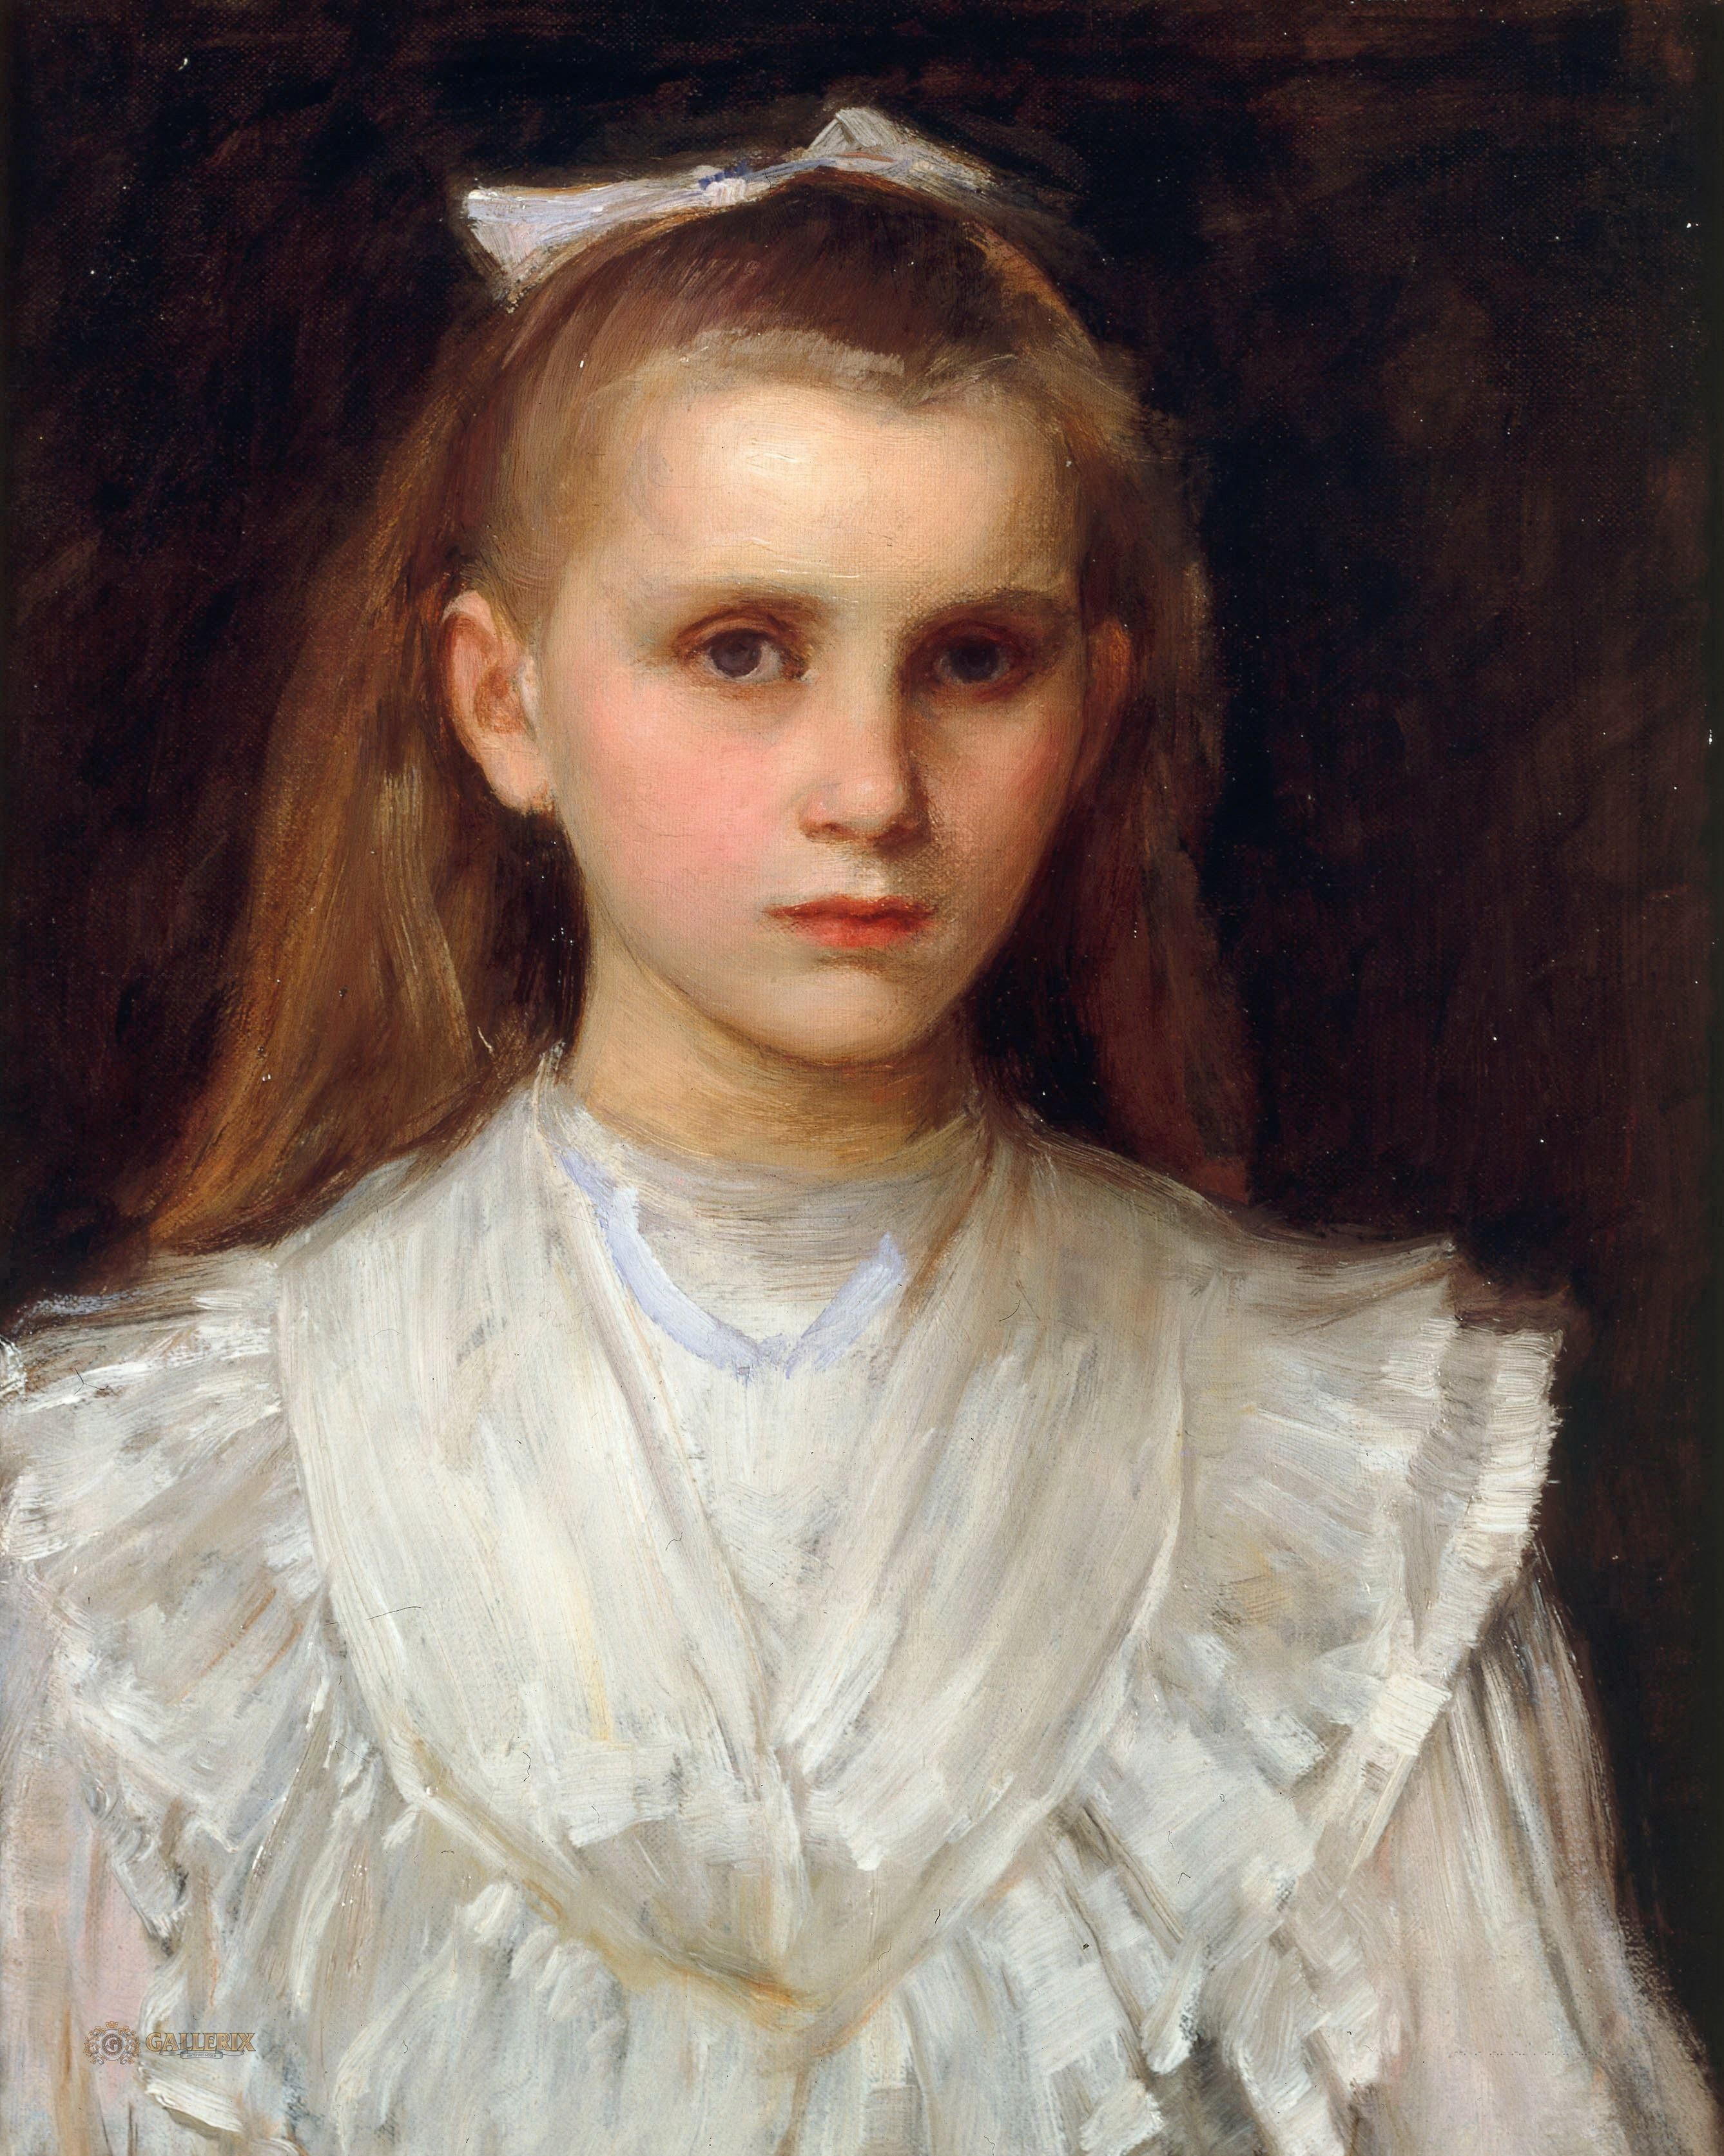 Very young girl art